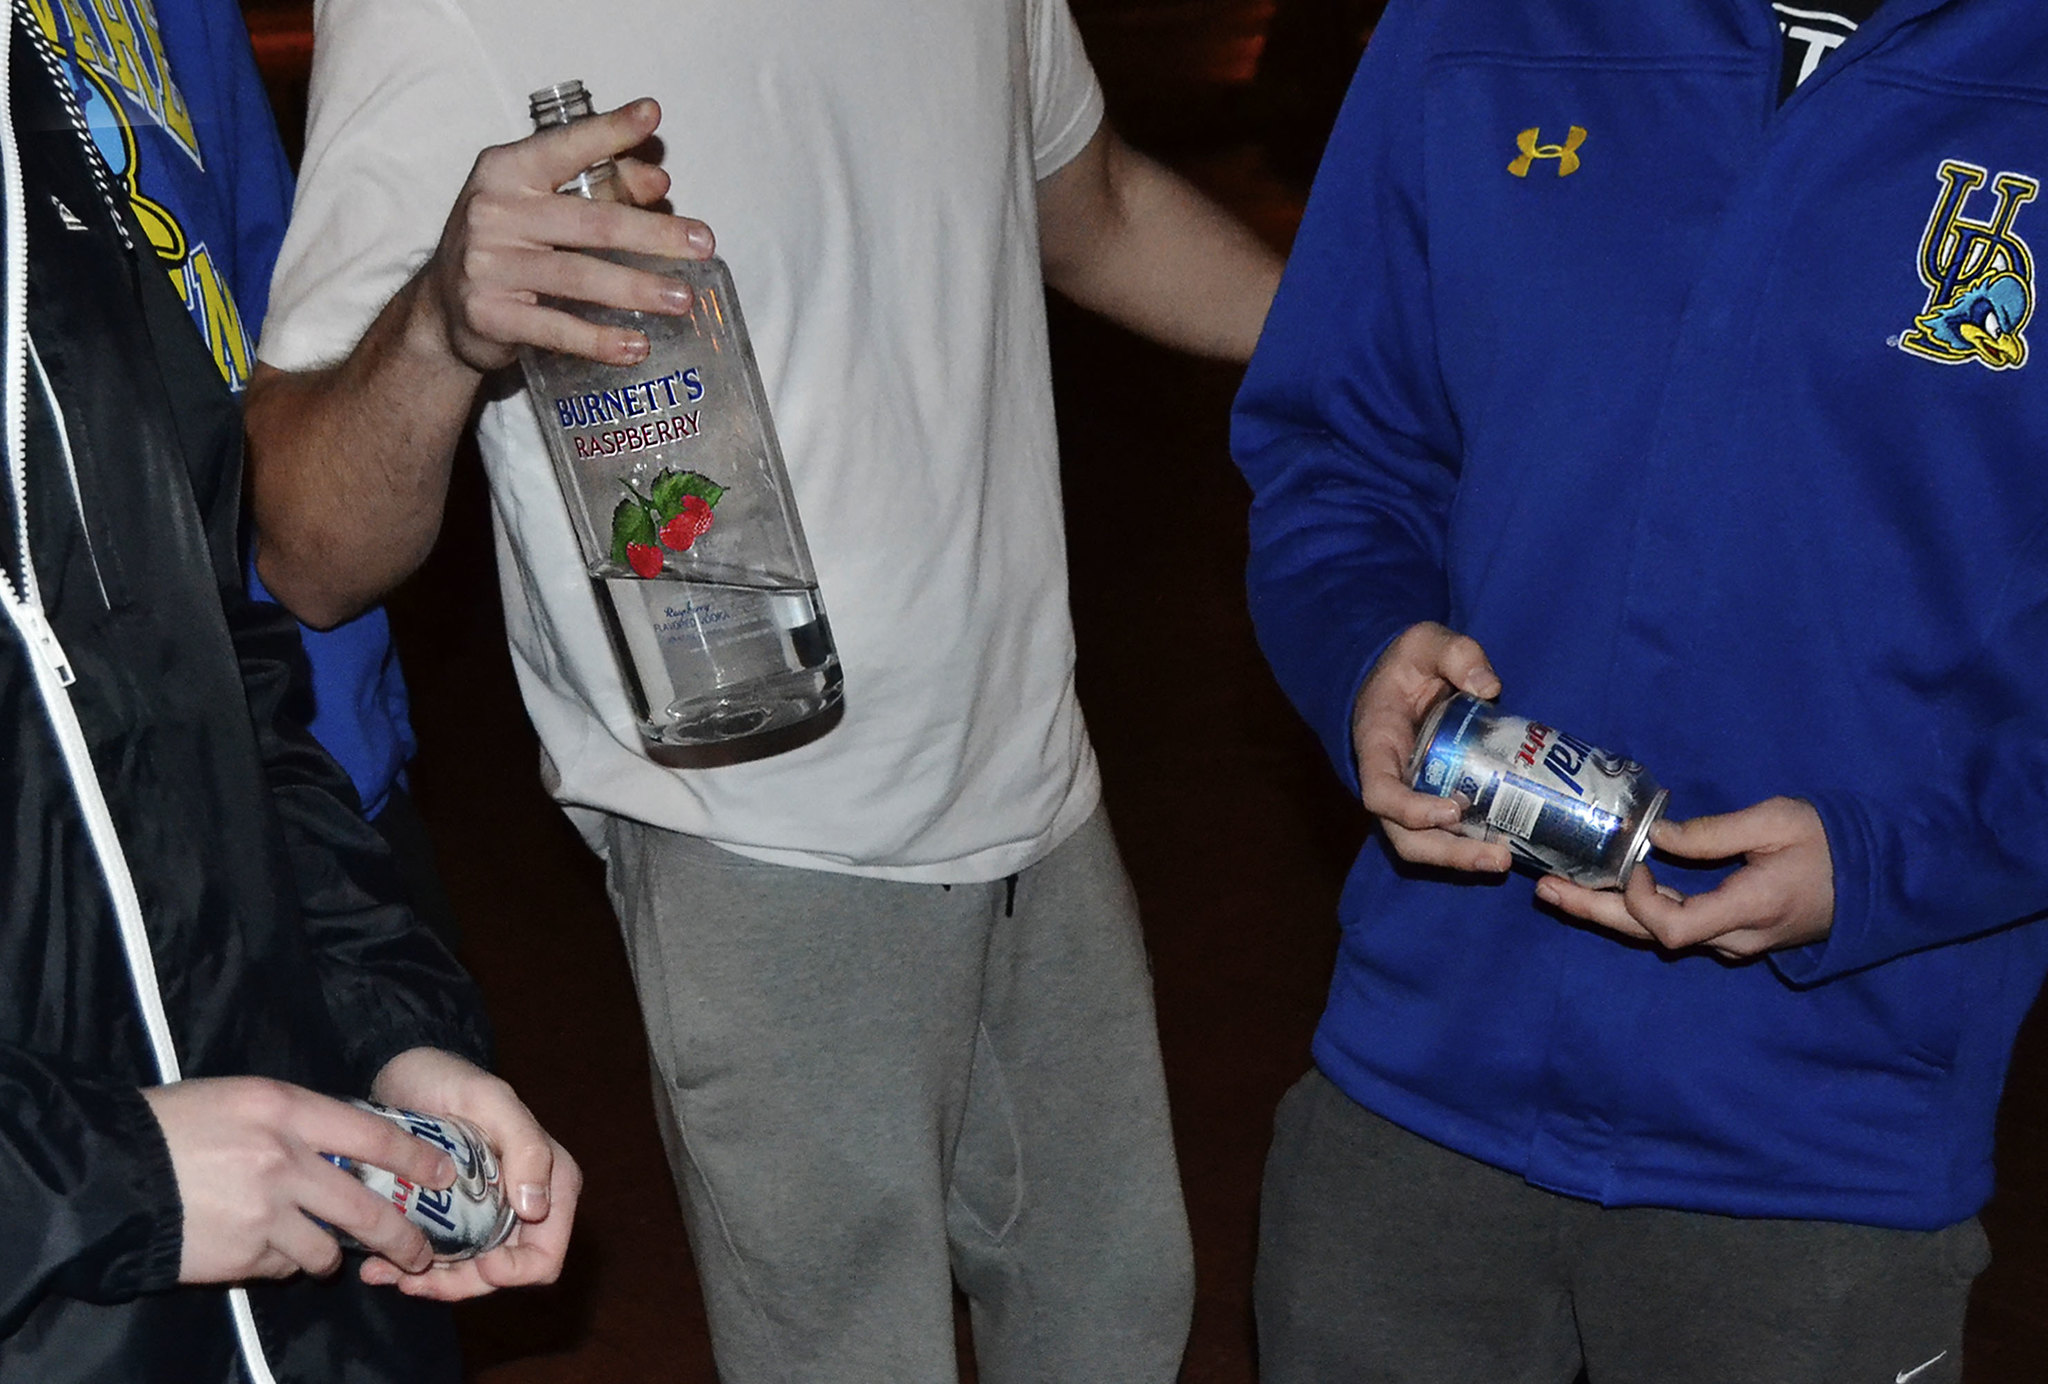 Freshman drinking habits: What they say versus what science says